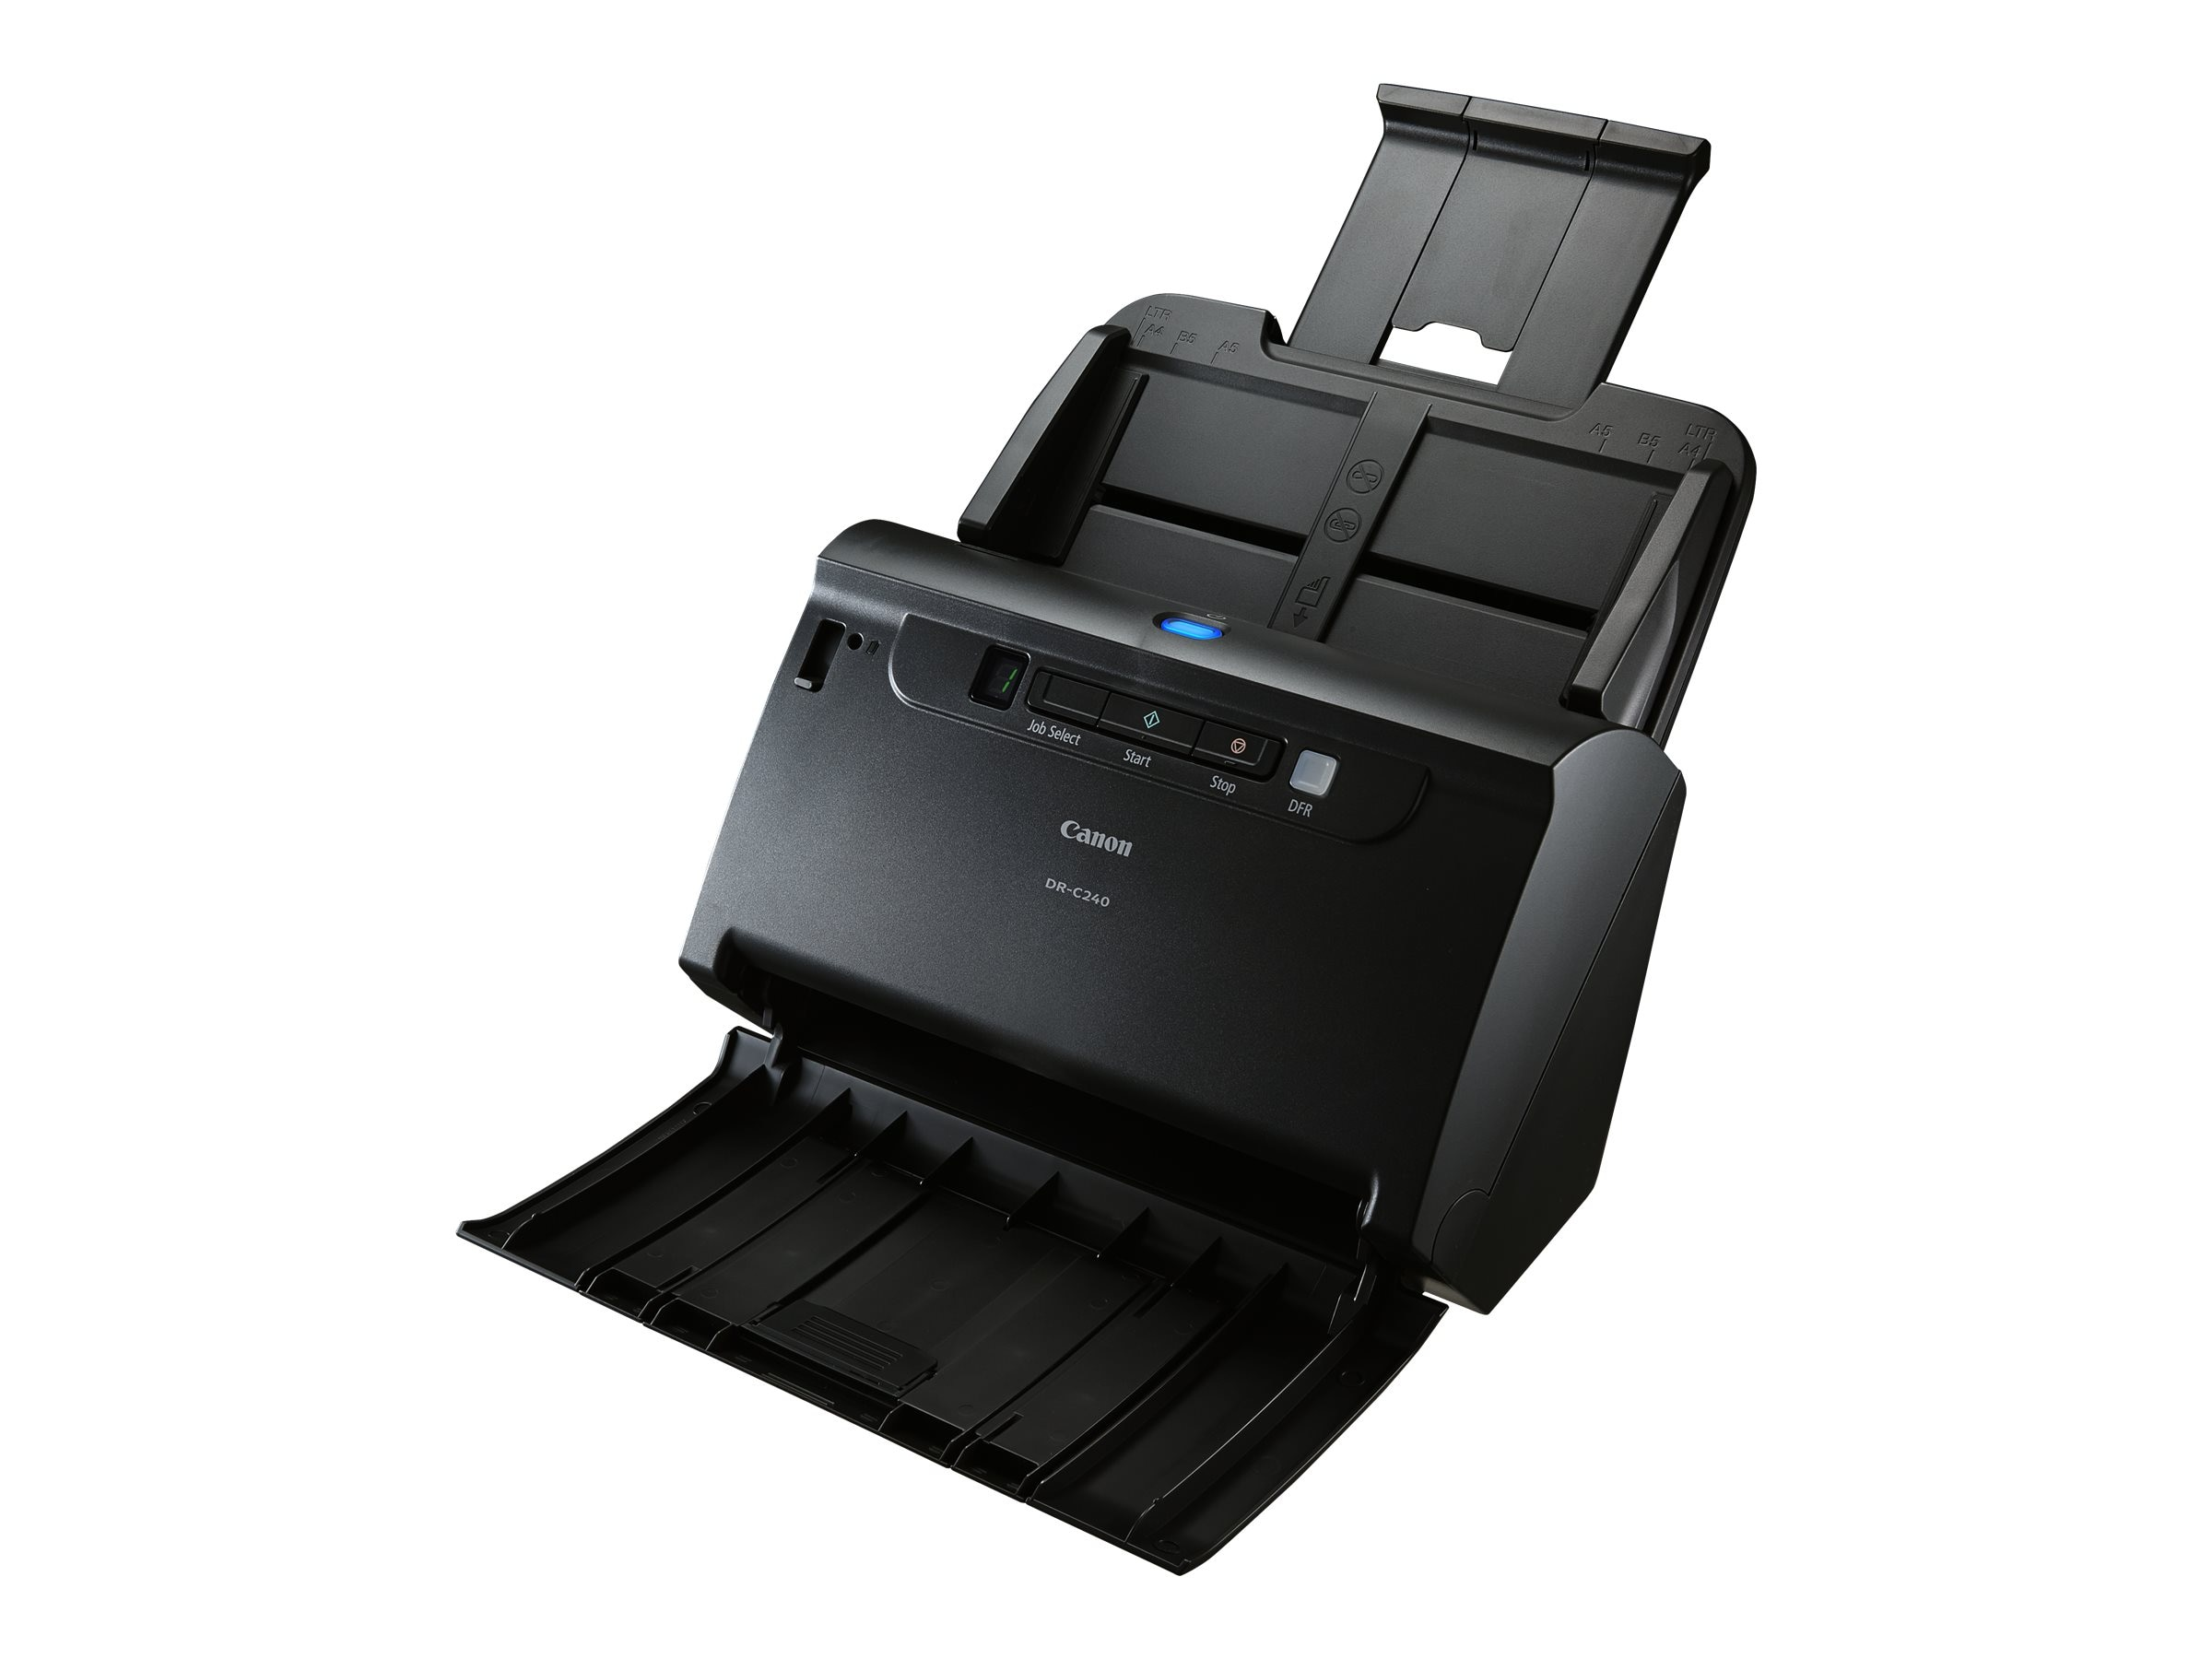 Canon imageFORMULA DR-C240 Document Management Scanner, 0651C002, 20661367, Scanners